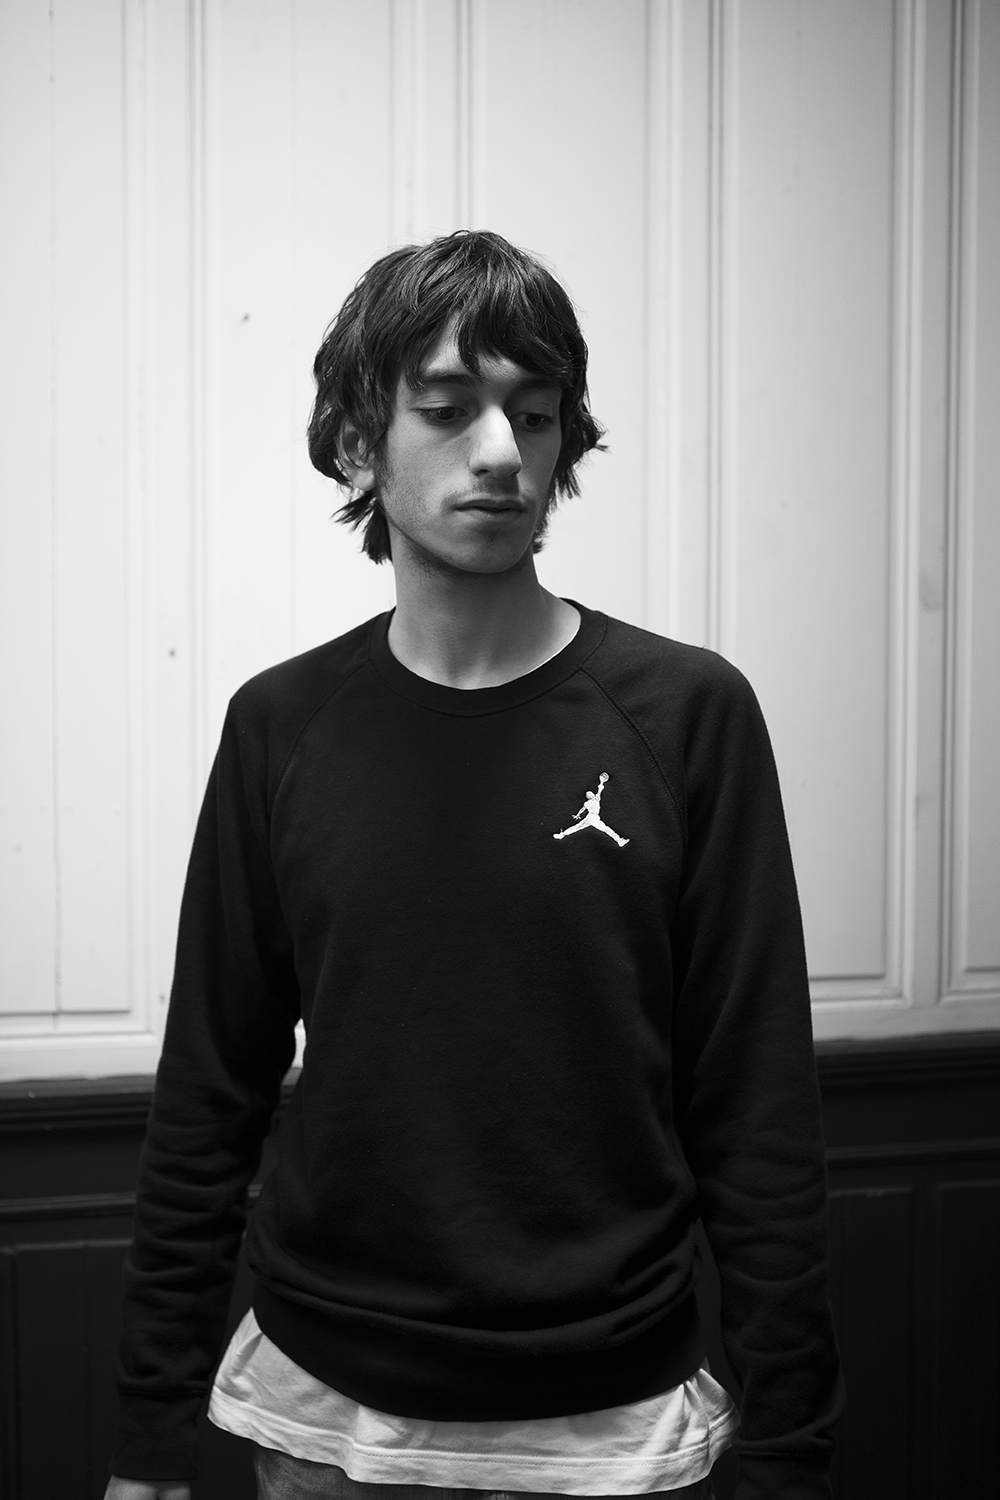 Apparition Bilal, #2, Bilal, Marseille, 2016